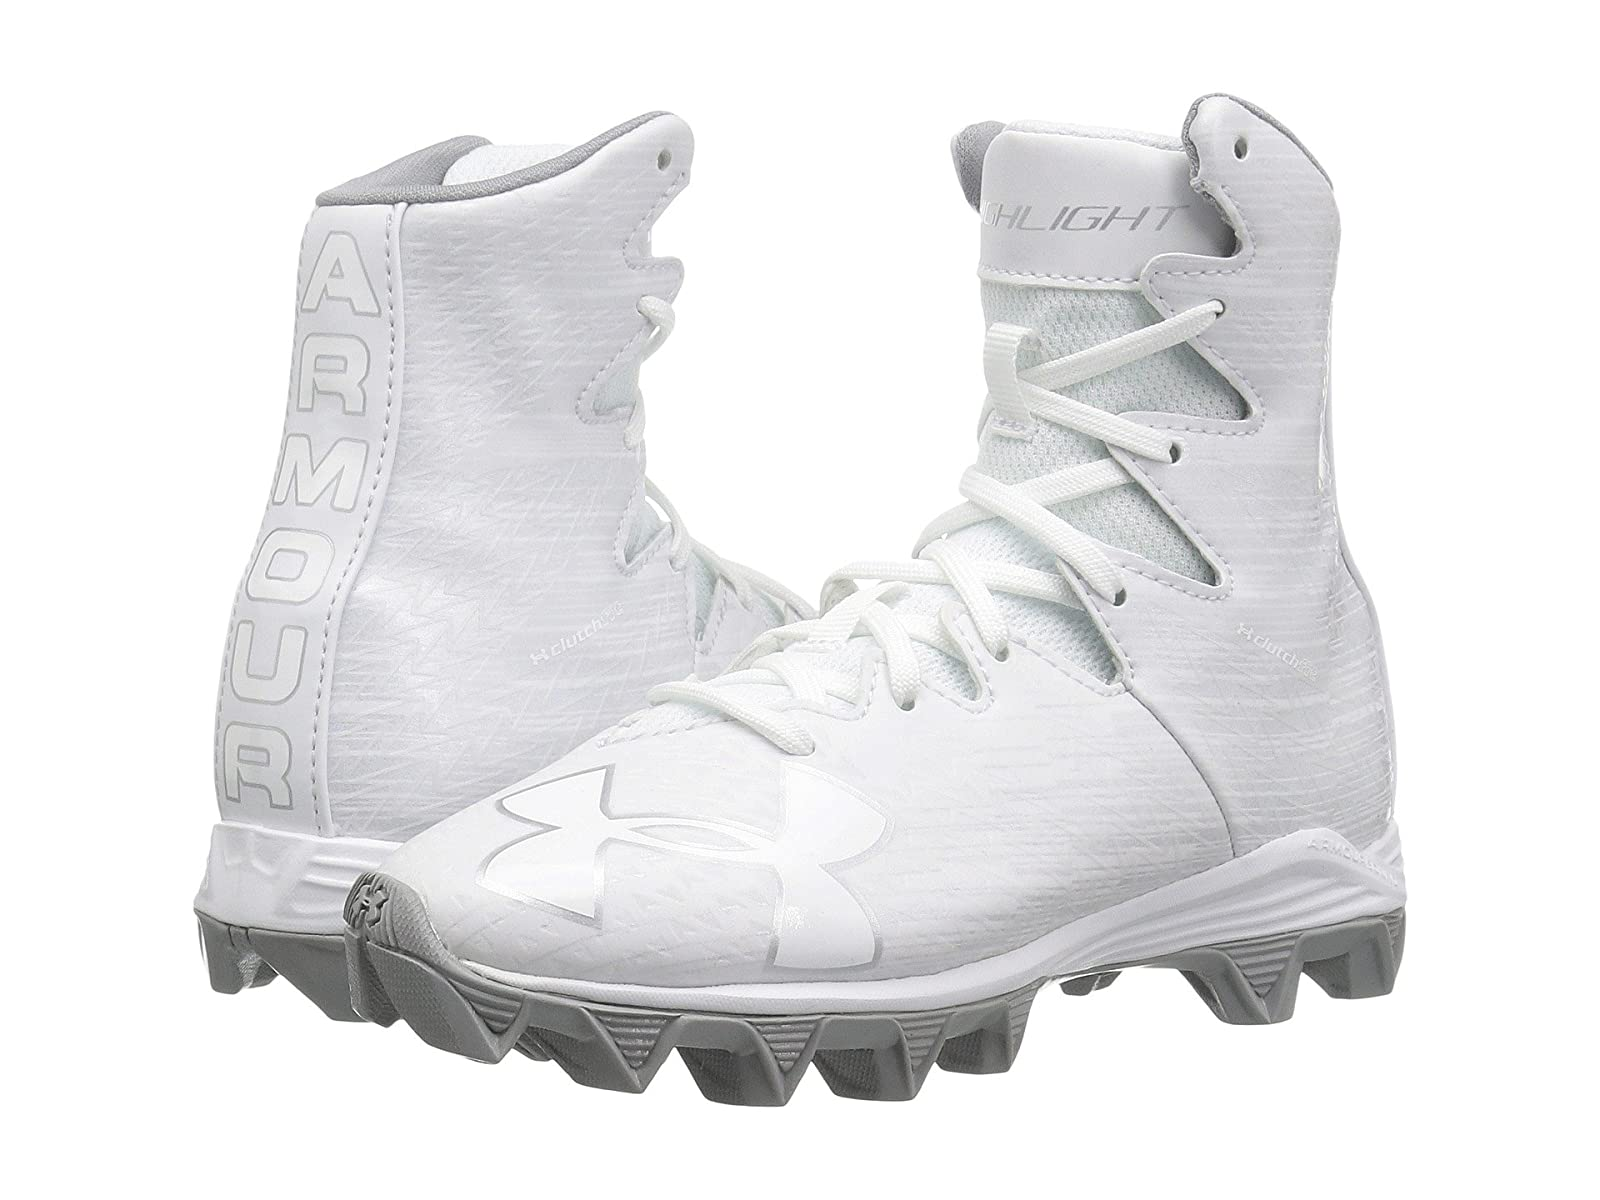 Under Armour Kids UA Highlight RM LE Lacross (Little Kid/Big Kid)Atmospheric grades have affordable shoes